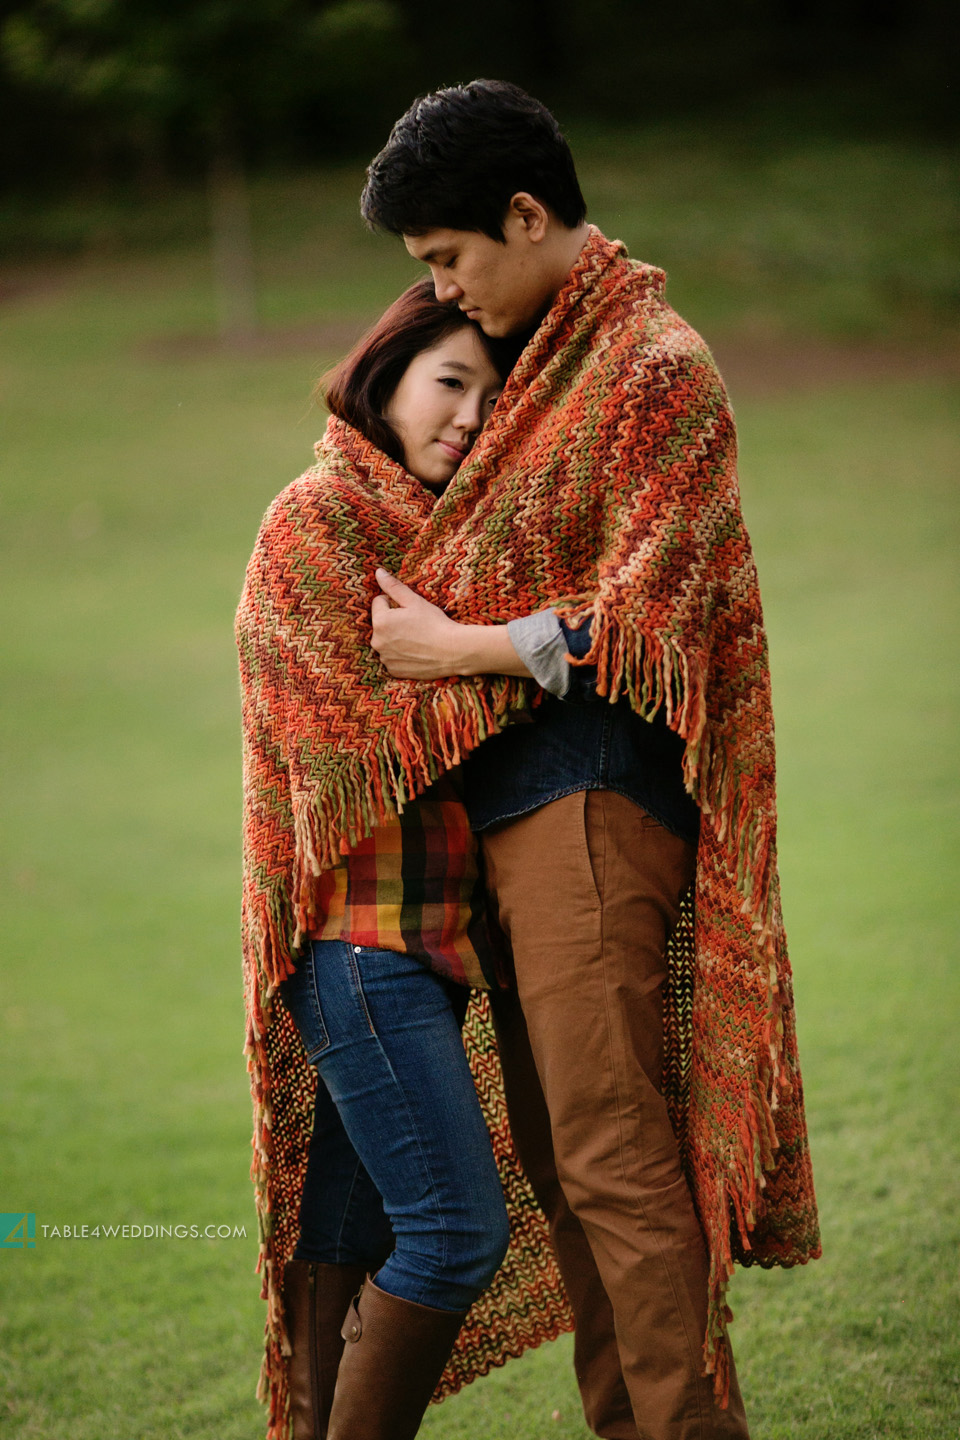 034 table4 best of 2013 engagement photos fall blanket